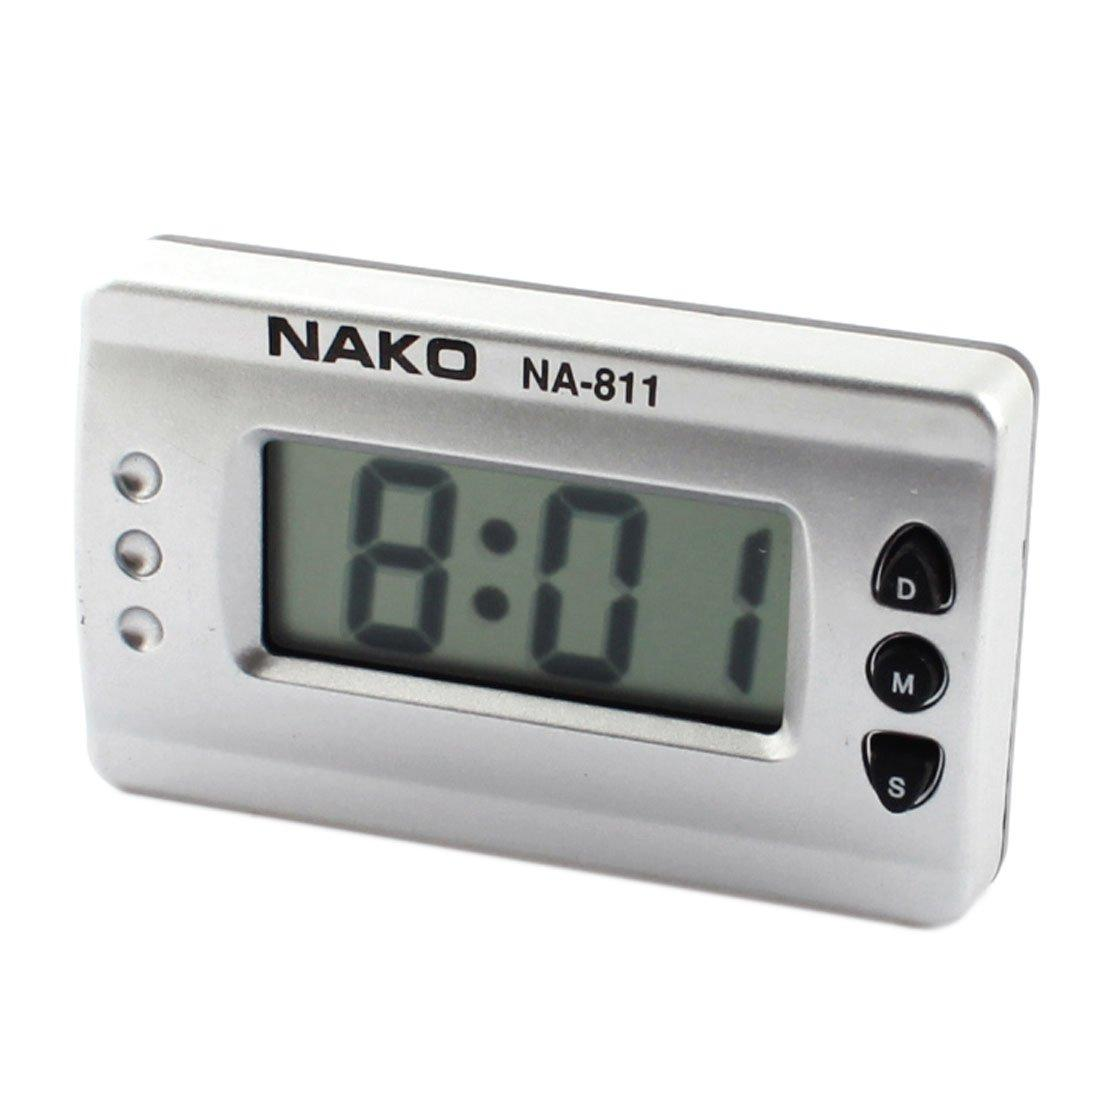 2017 wholesale hgho 2016 hot sale led wall clock large digital led 2017 wholesale hgho 2016 hot sale led wall clock large digital led wall clock table desk wall clock from callaway 1997 dhgate amipublicfo Image collections